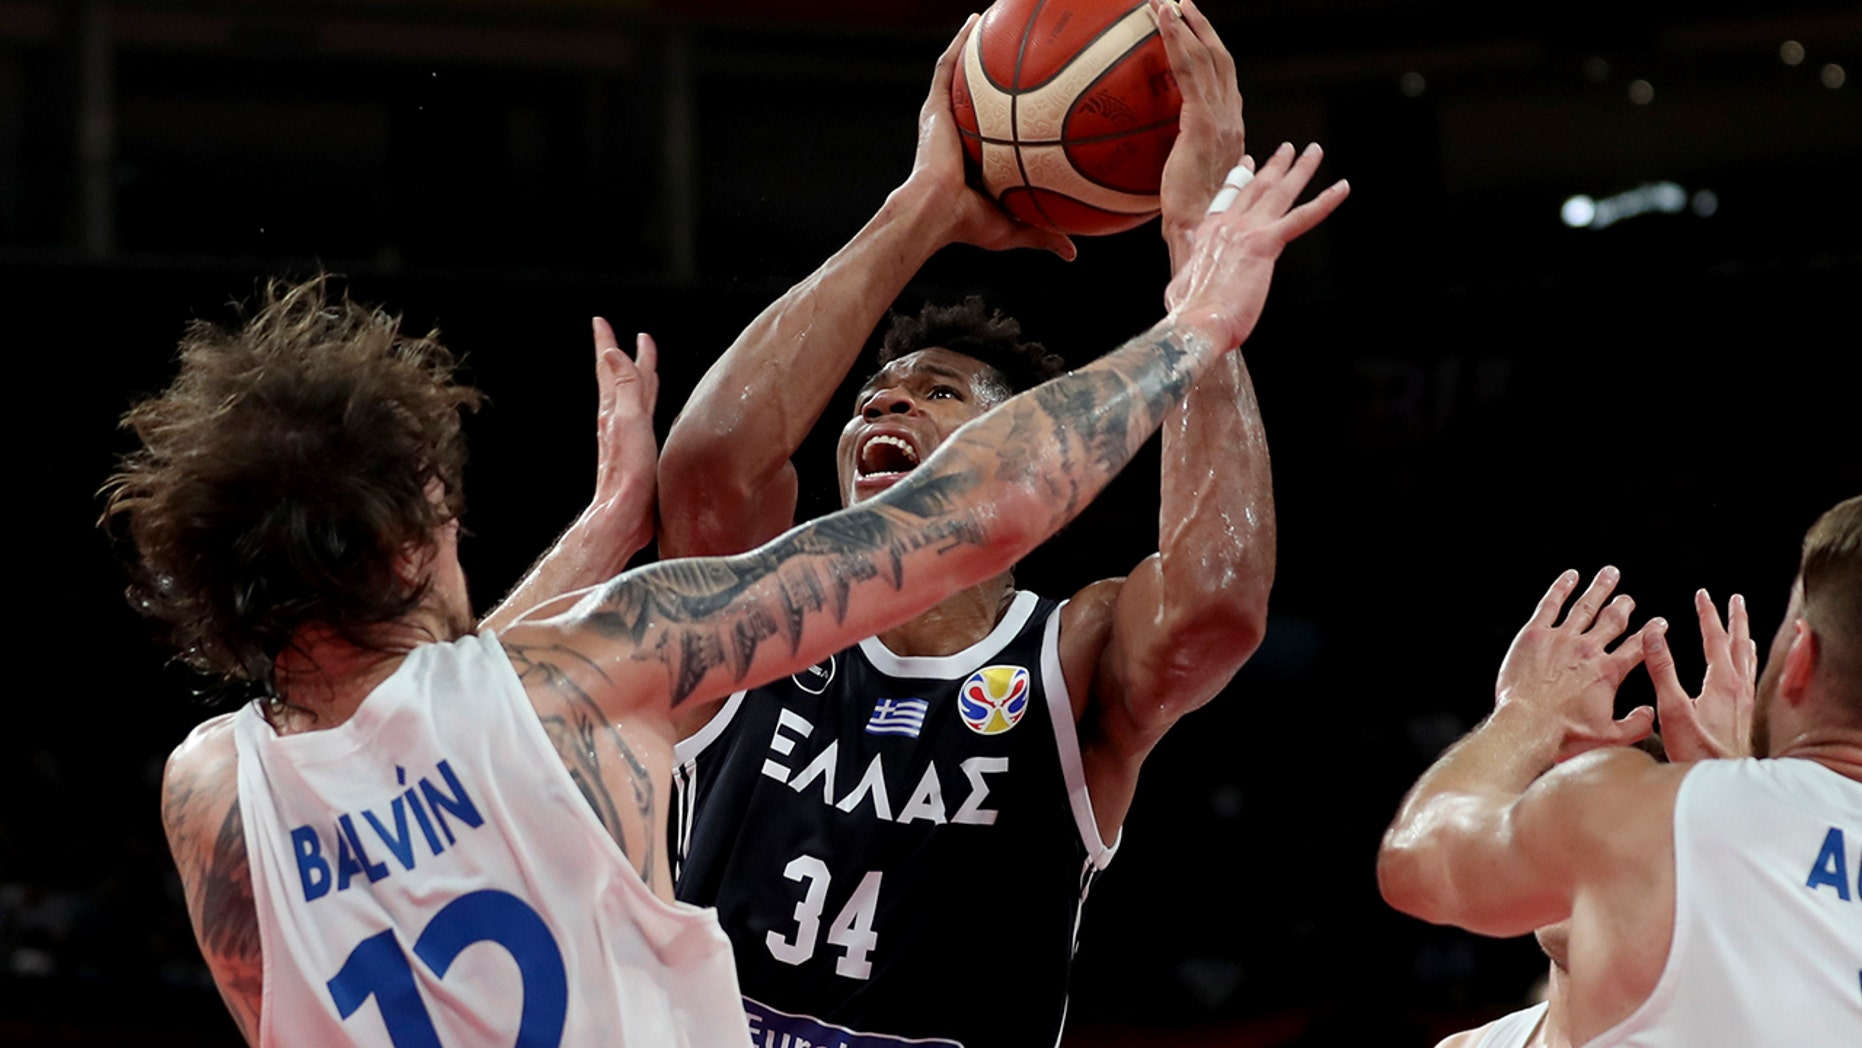 Greece's Giannis Antetokounmpo tries to shoot past Czech Republic's Ondrej Balvin during a phase two match for the FIBA Basketball World Cup at the Shenzhen Bay Sports Center in Shenzhen on Monday, Sept. 9, 2019. (AP Photo/Ng Han Guan)